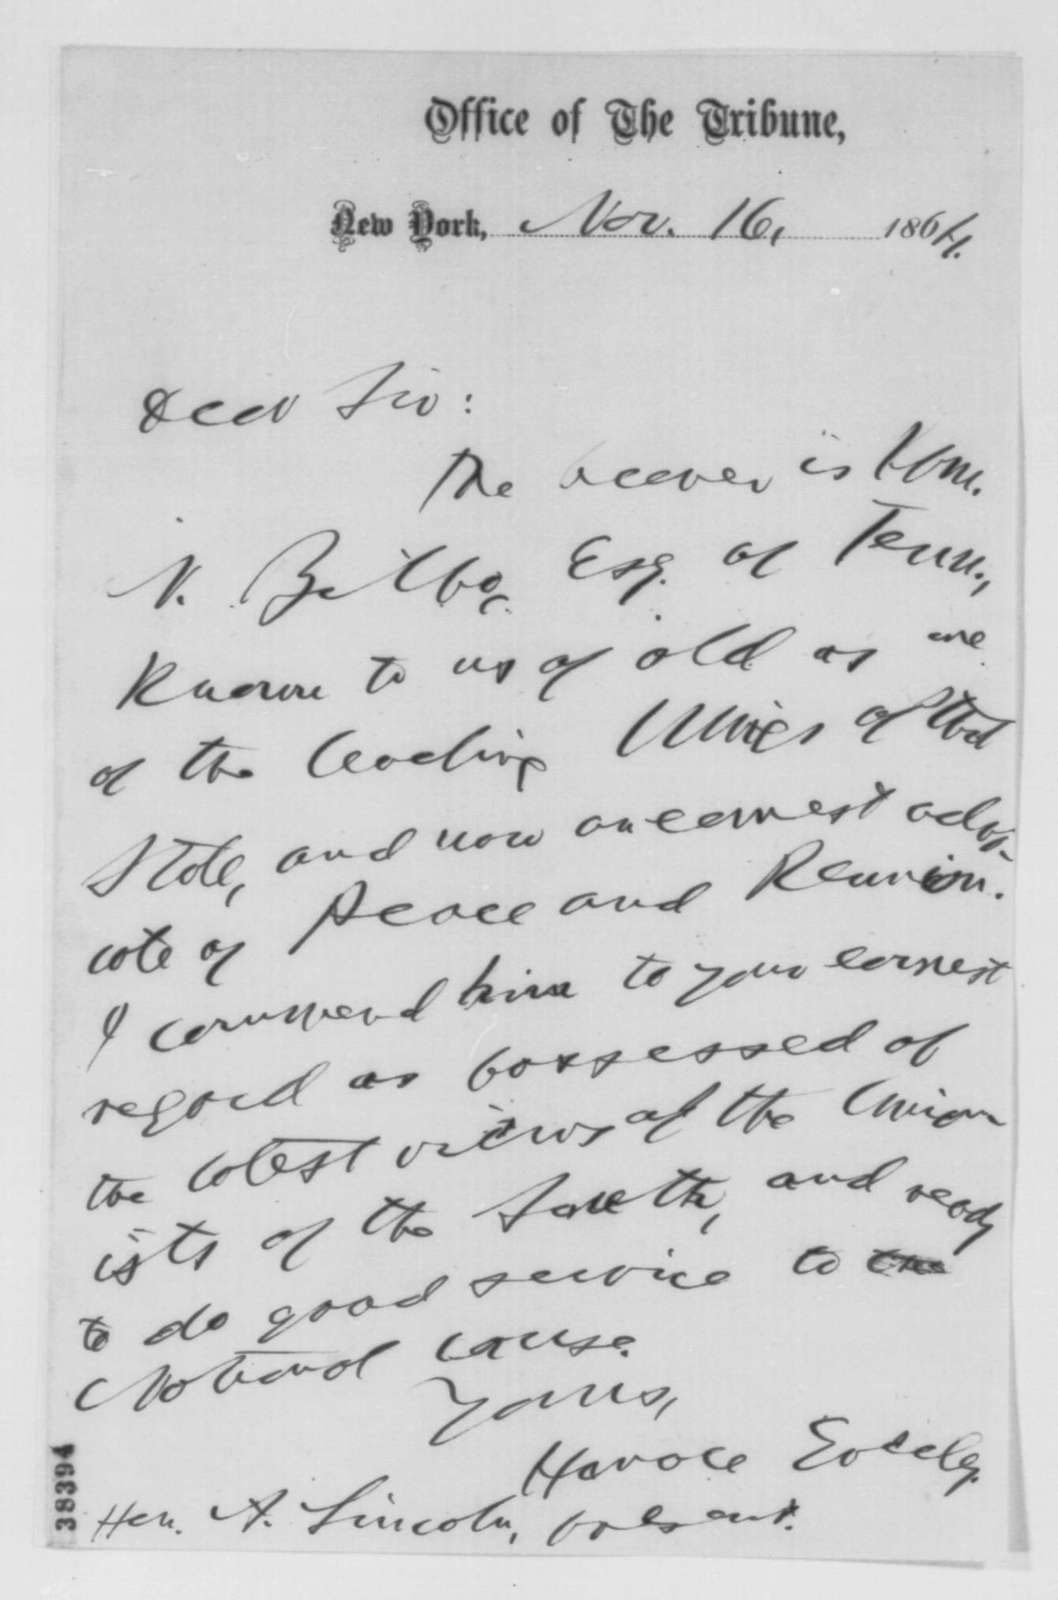 Horace Greeley to Abraham Lincoln, Wednesday, November 16, 1864  (Introduction)